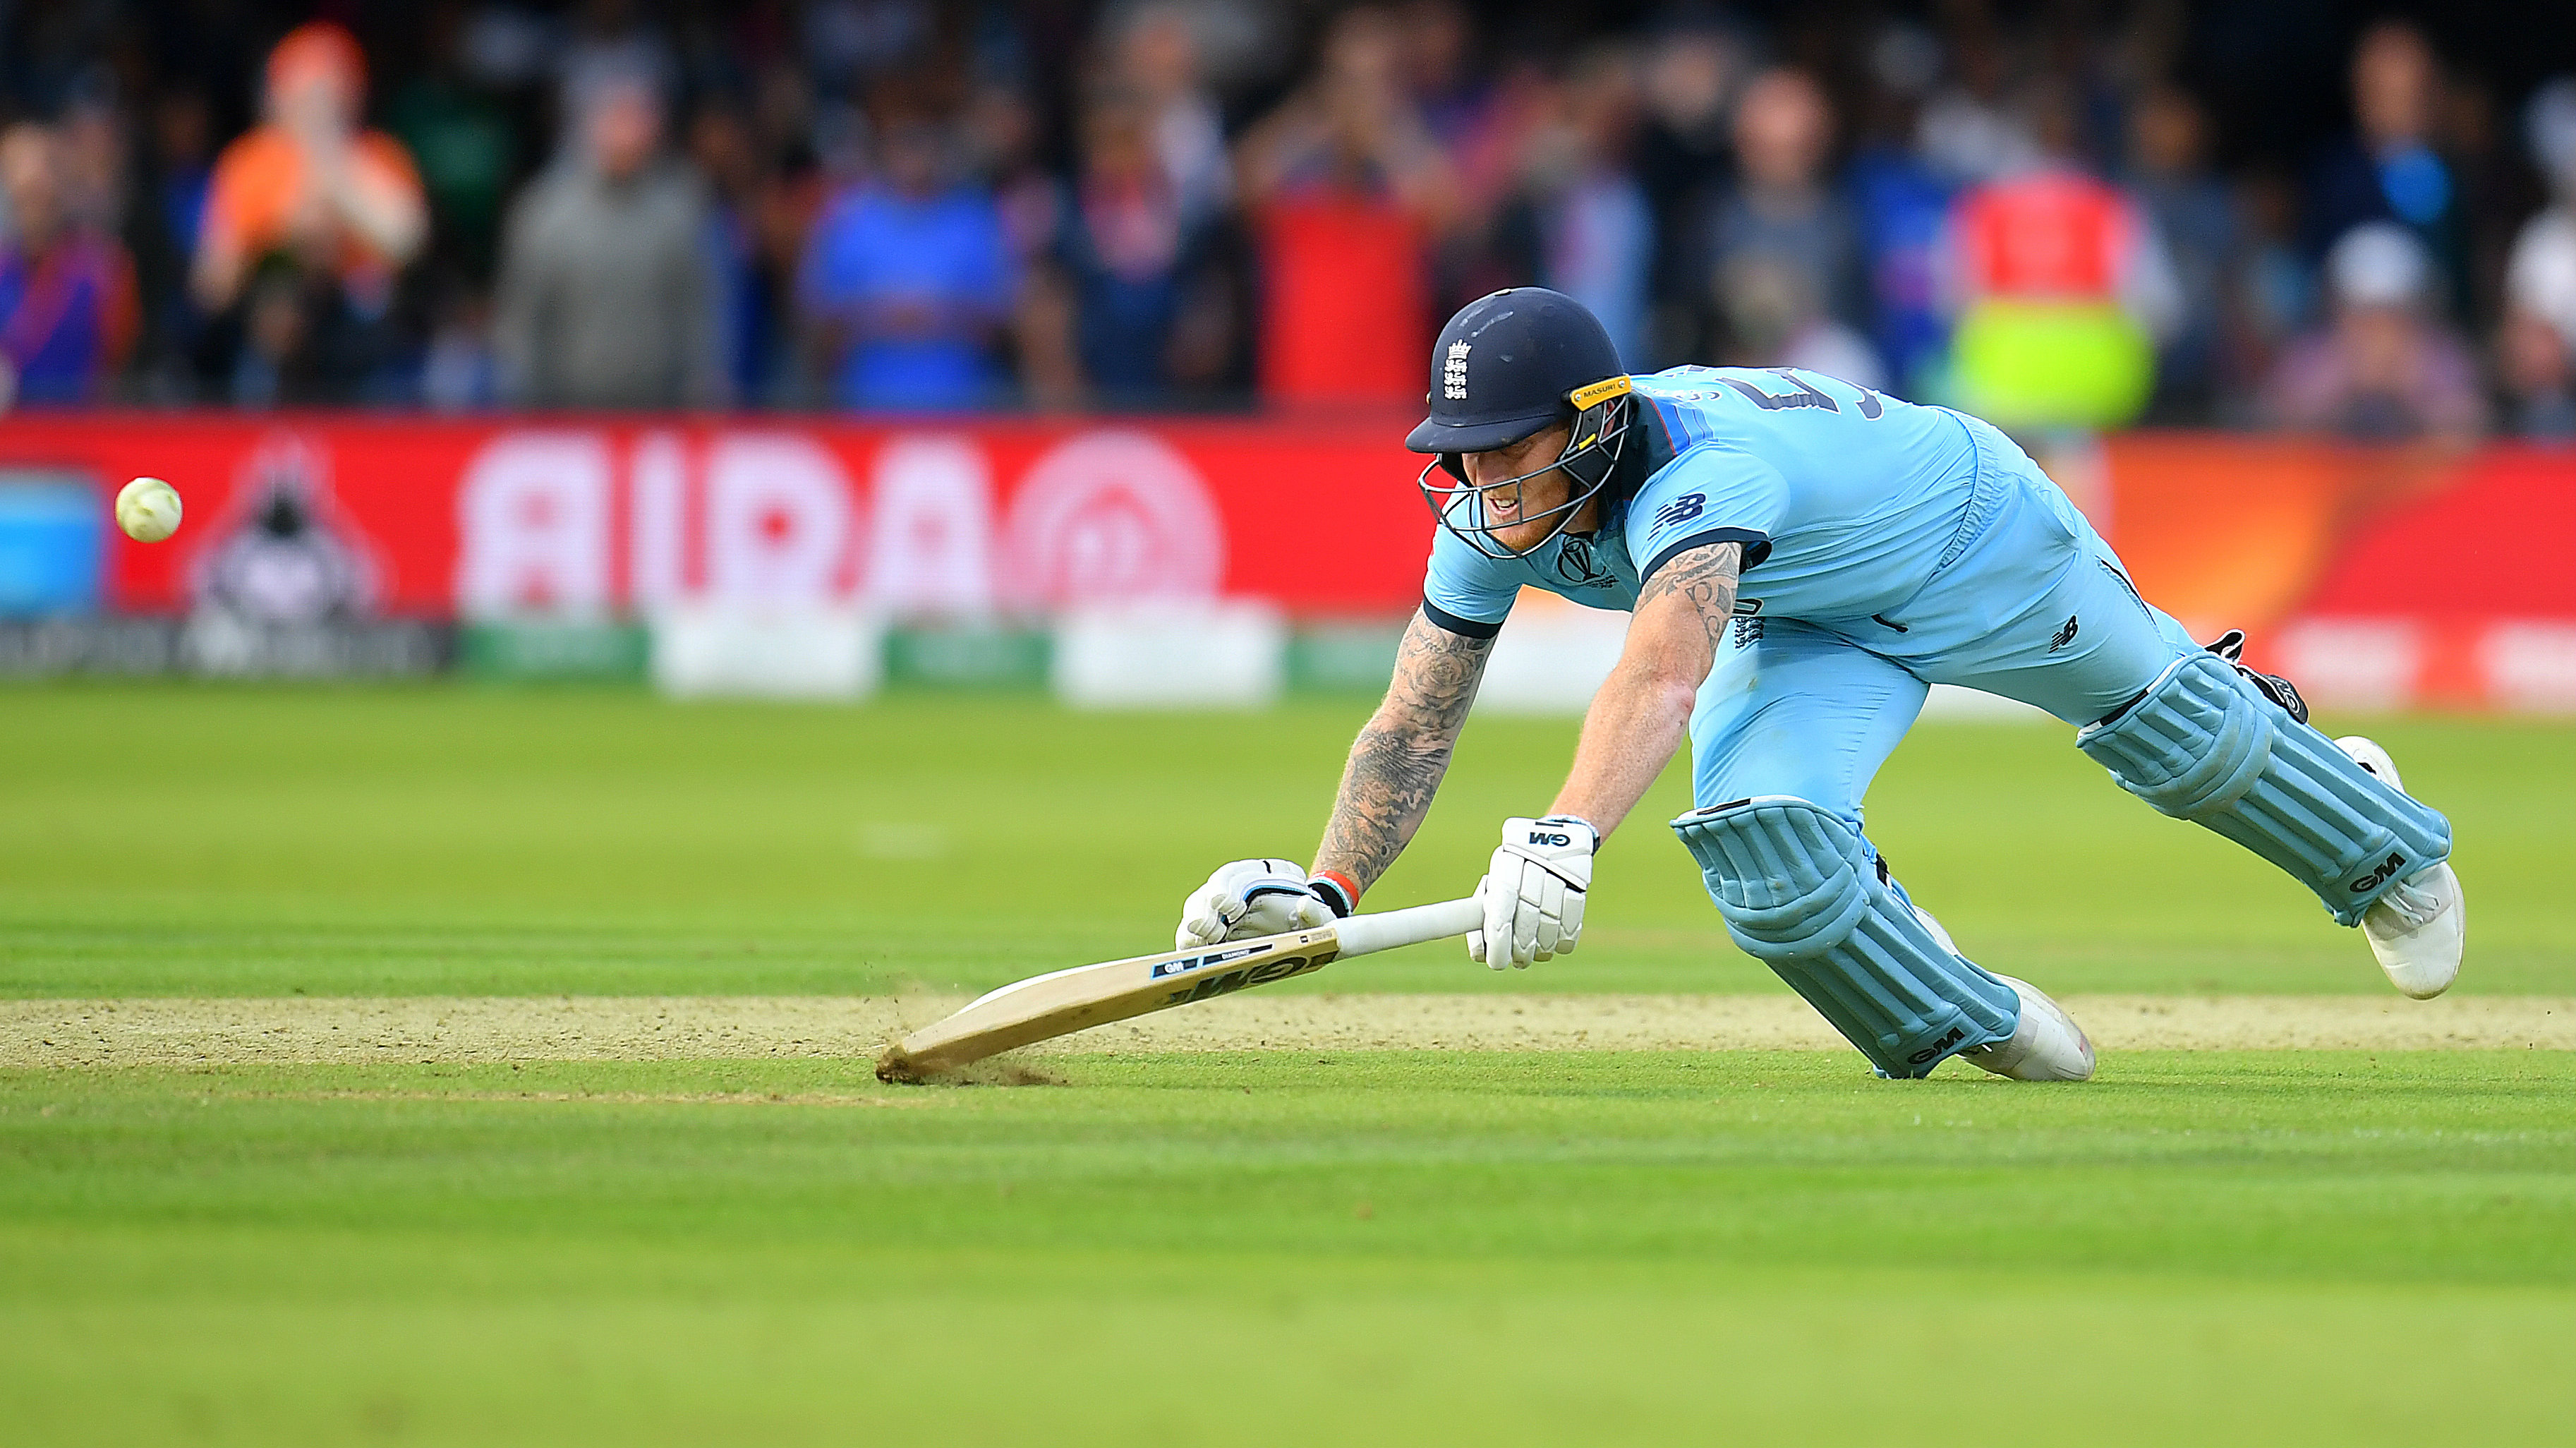 ODI World Cup: Ben Stokes wanted umpires to overturn call in final over against New Zealand